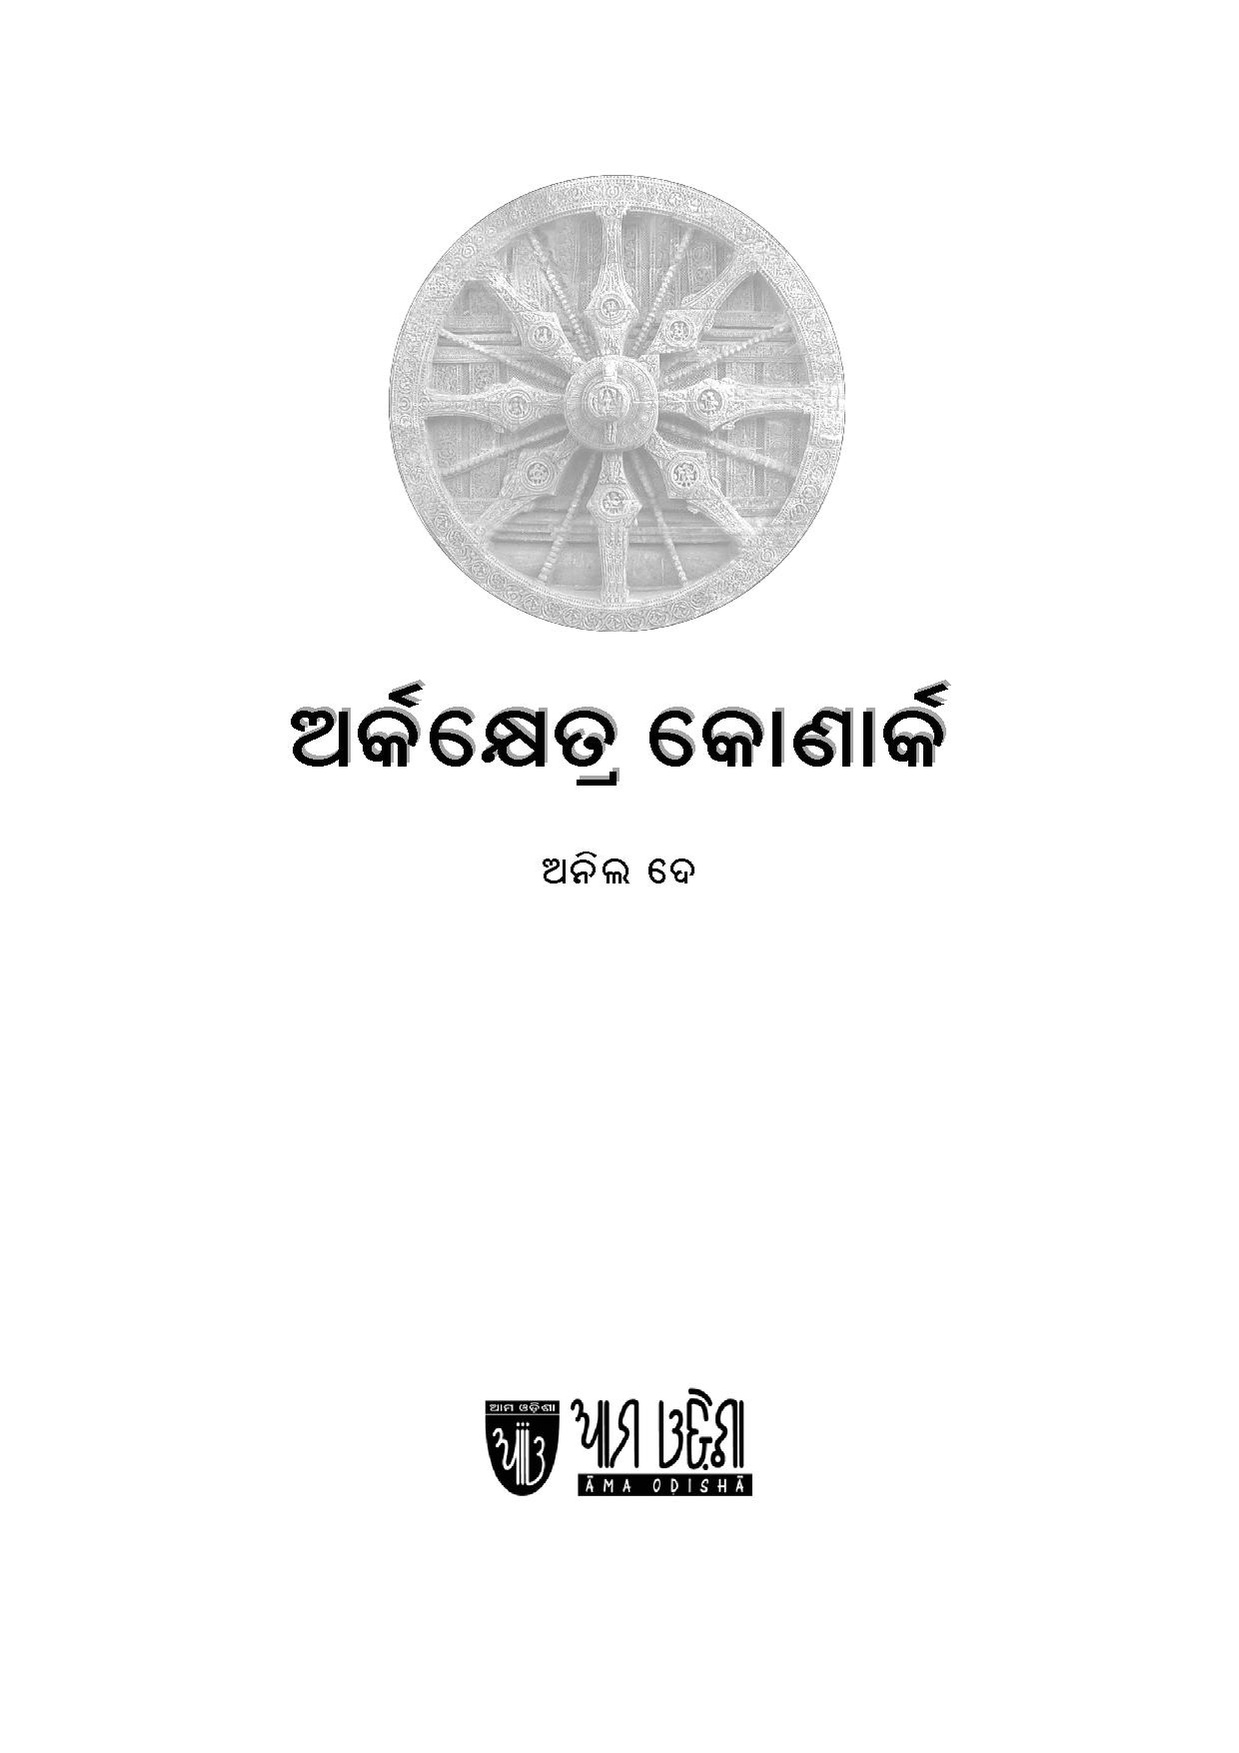 Filearkakshetra Konarkpdf Wikimedia Commons Original File 1239 X 1754 Pixels Size 211 Mb Mime